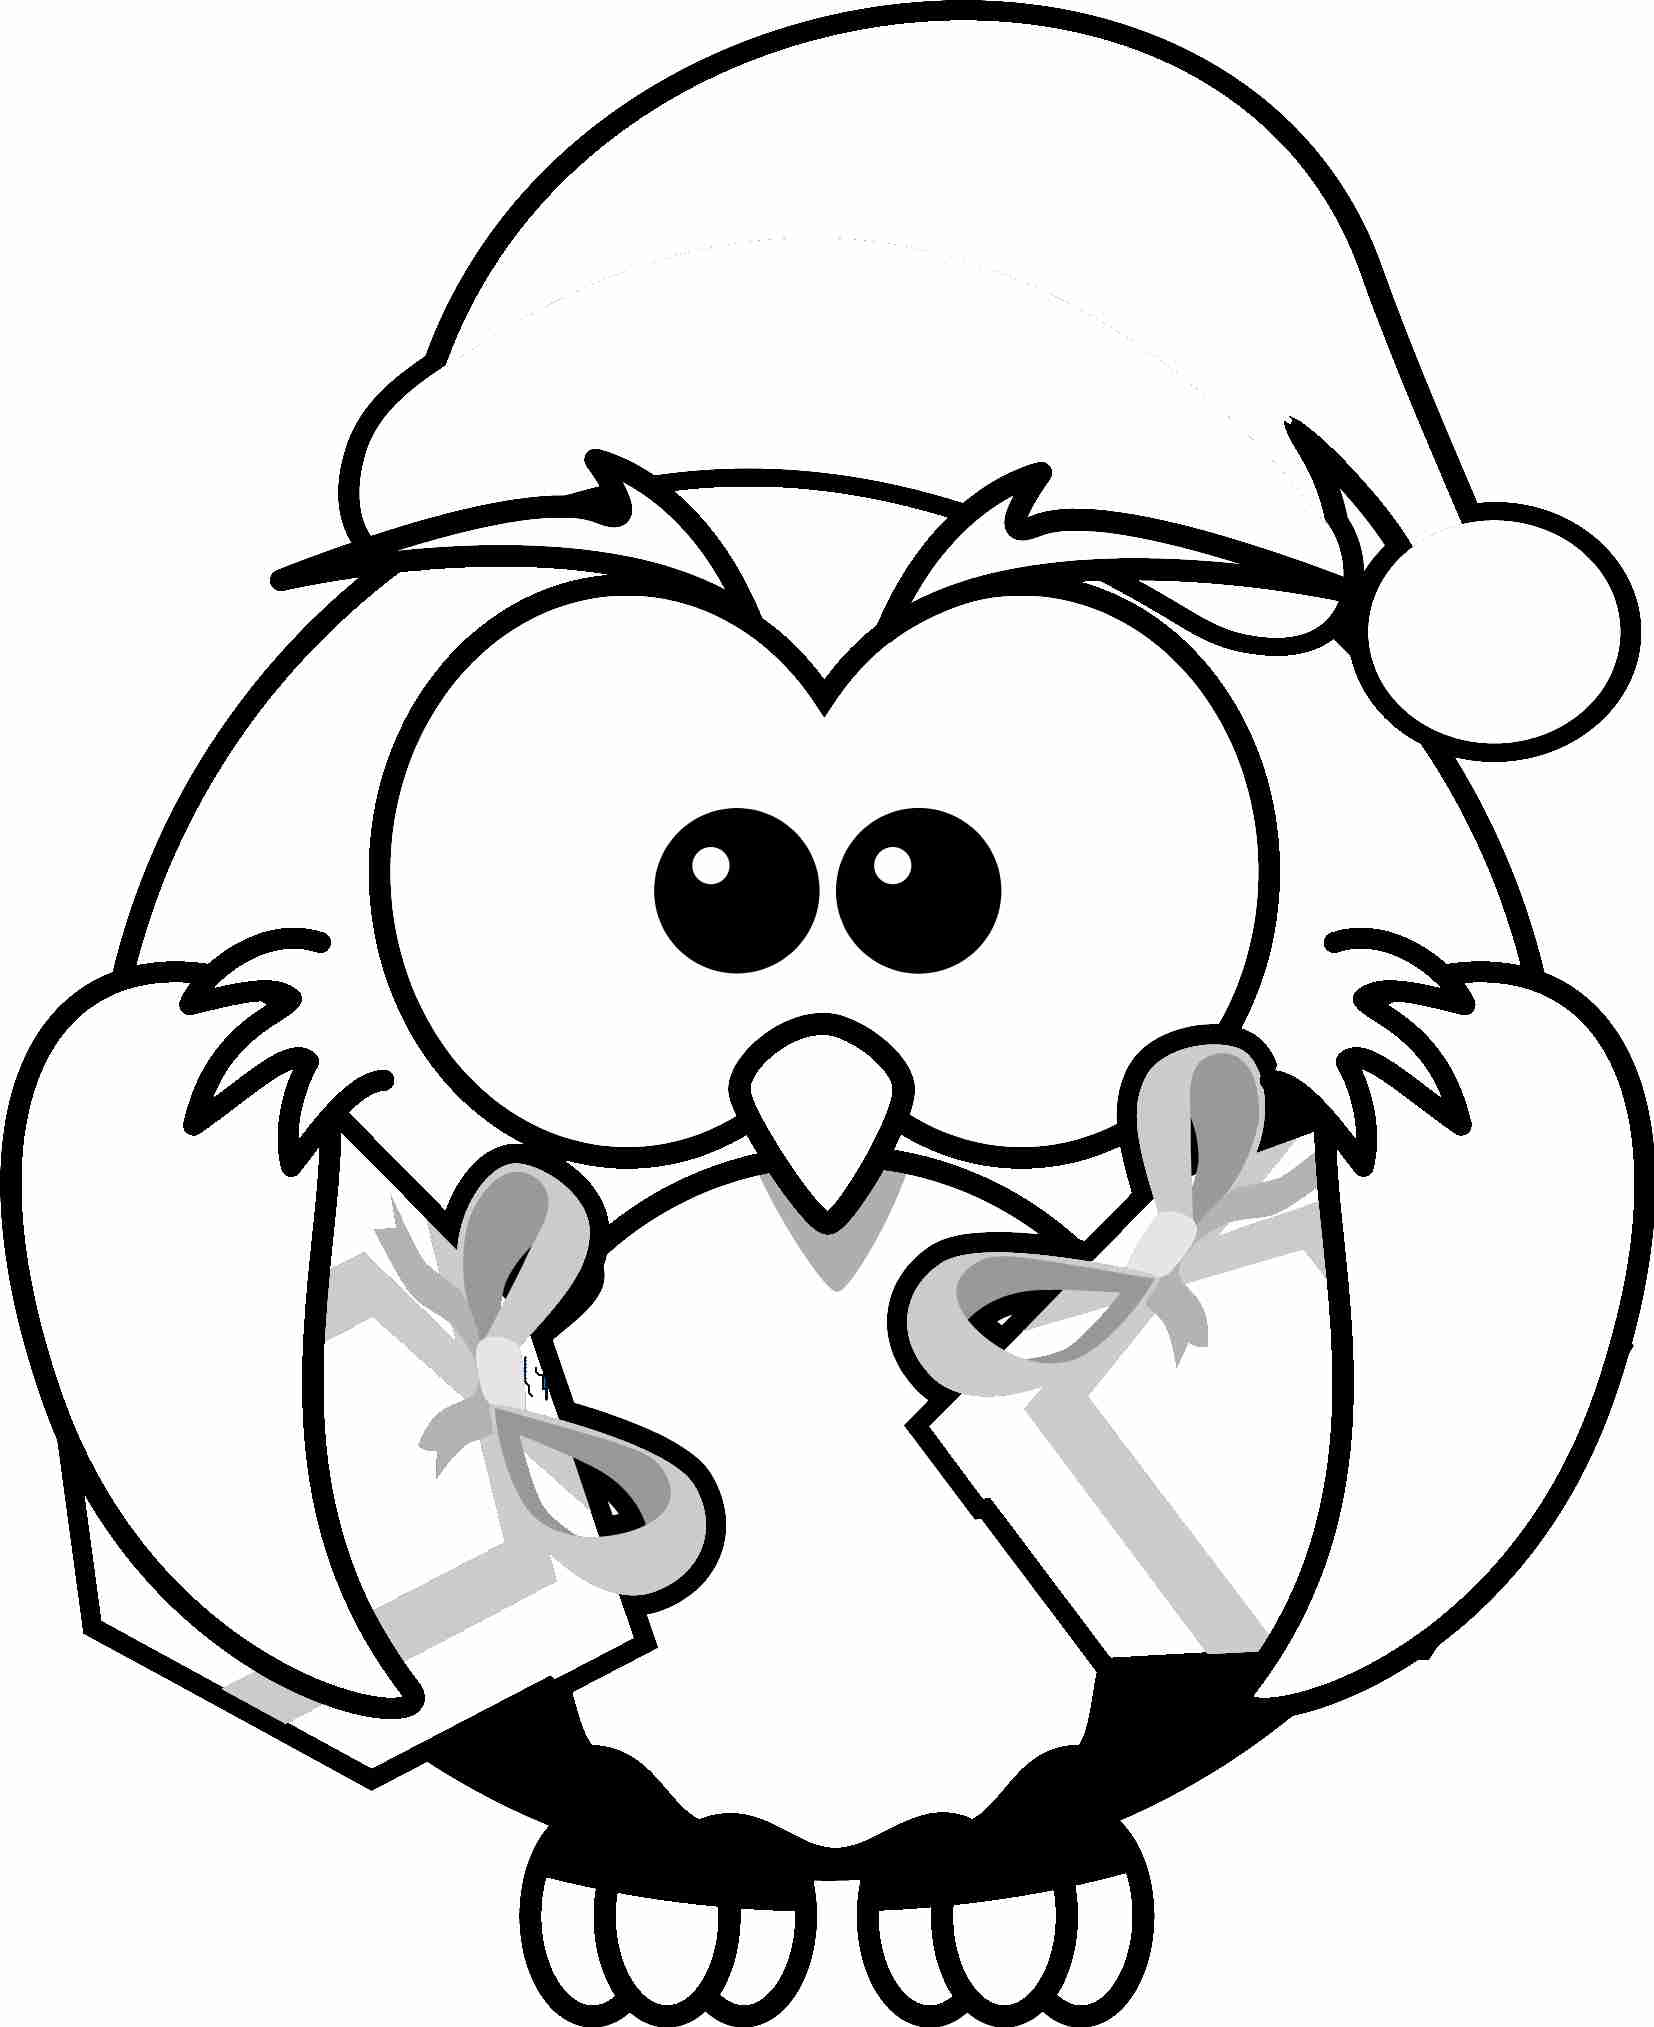 Christmas penguin coloring pages printable az coloring pages for Christmas kitten coloring pages